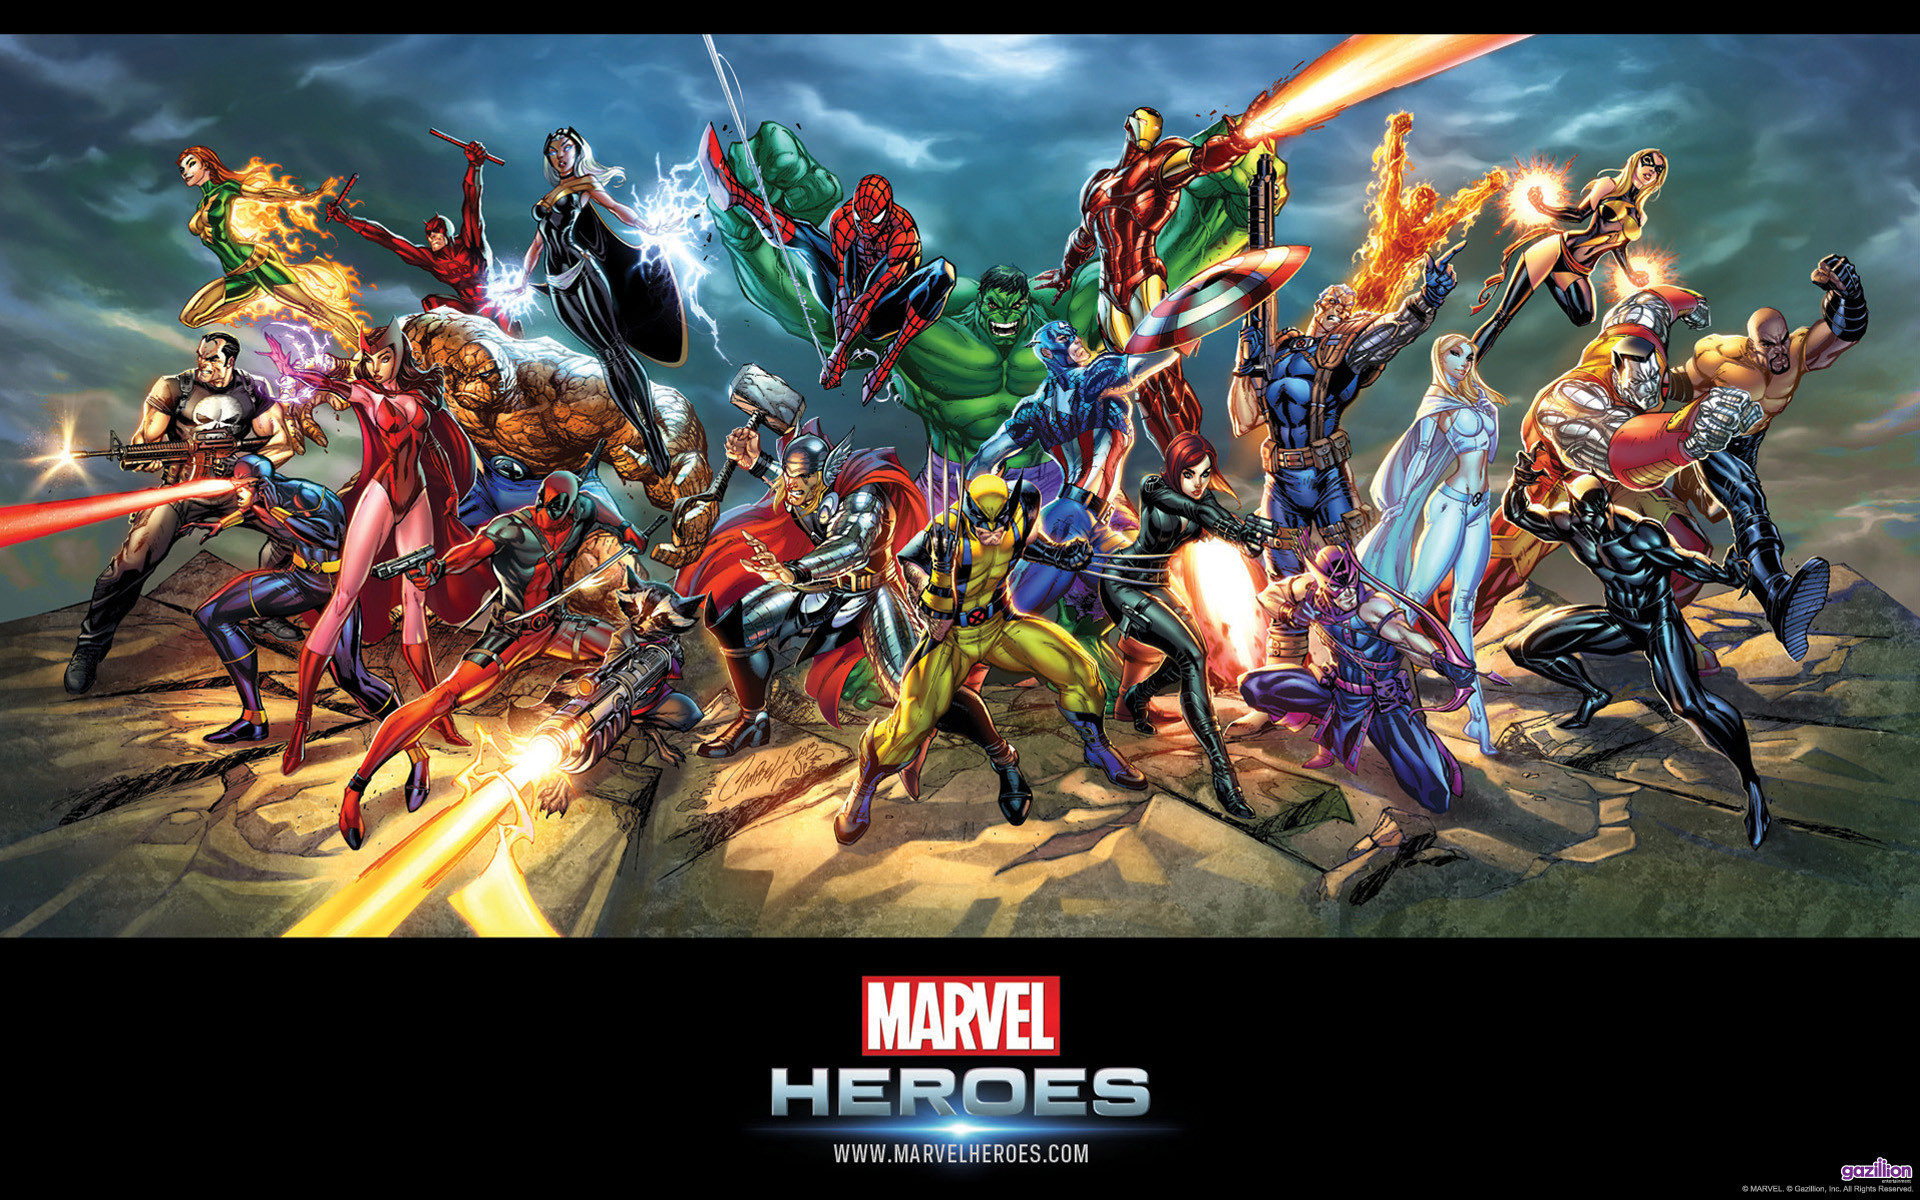 Marvel Heroes by Jeff Scott Campbell